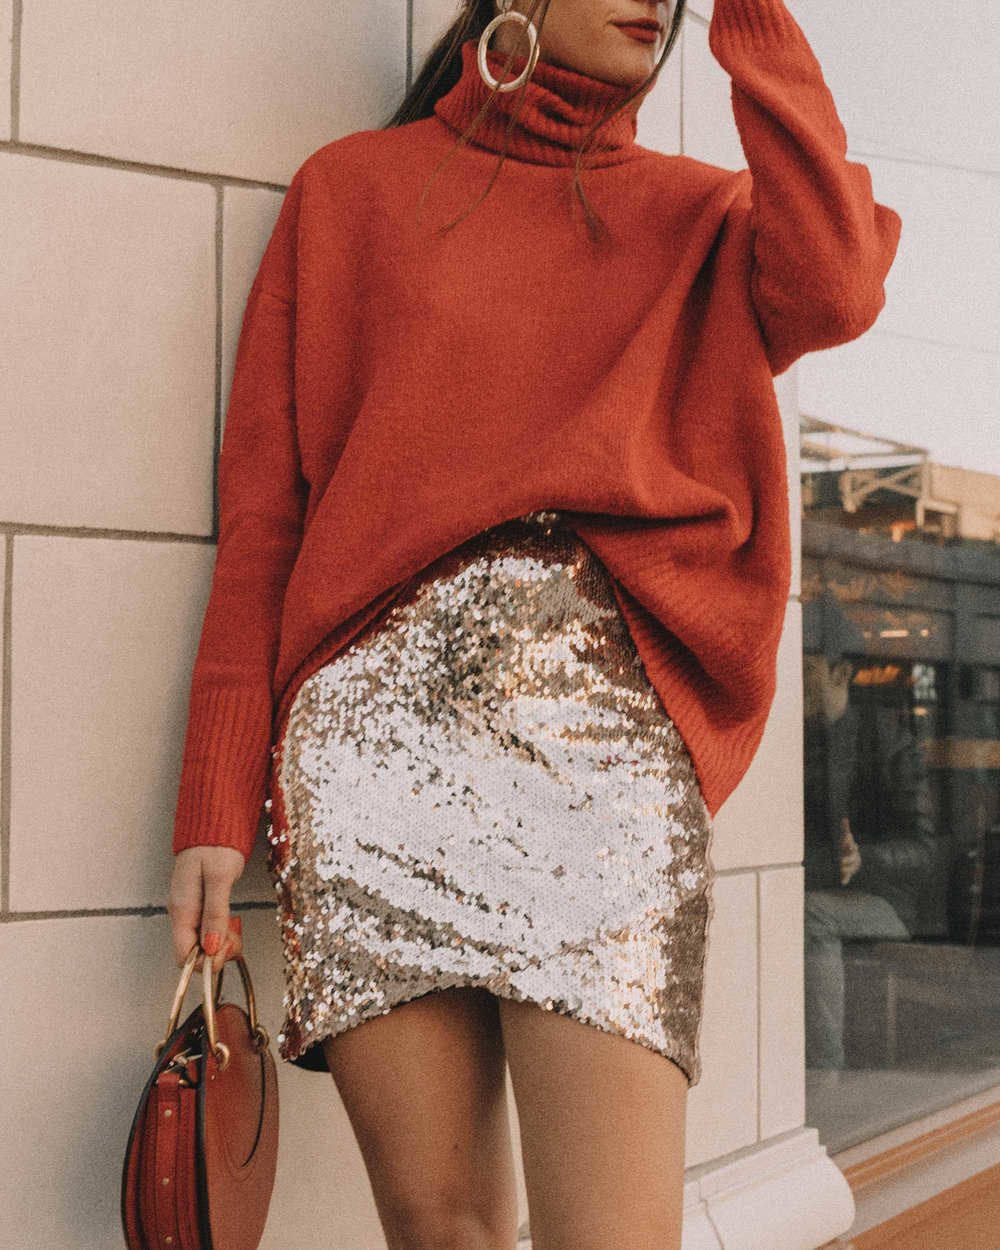 Red turtleneck sweater with an oversized collar and sequin skirt cute holiday outfit12.jpg